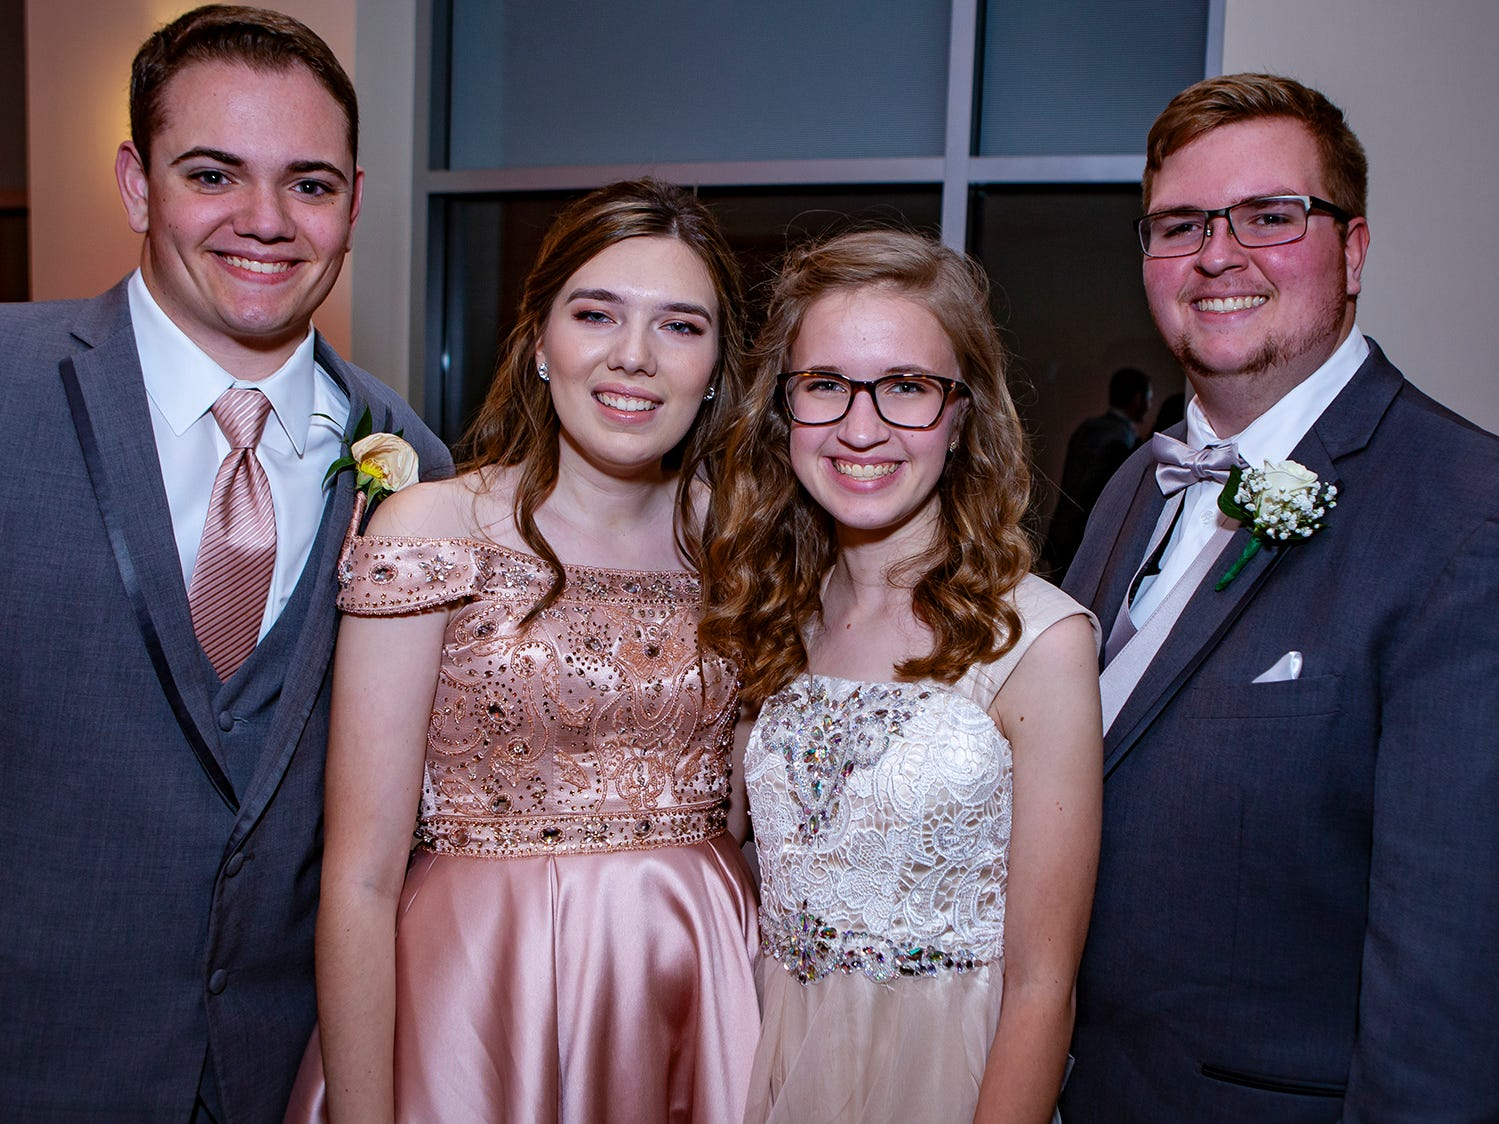 Aaron Lile, Hailey Fults, Claire Shirley and Garrett Ayers at Riverdale's prom, held Saturday, April 27, 2019 at MTSU's Student Union Building.